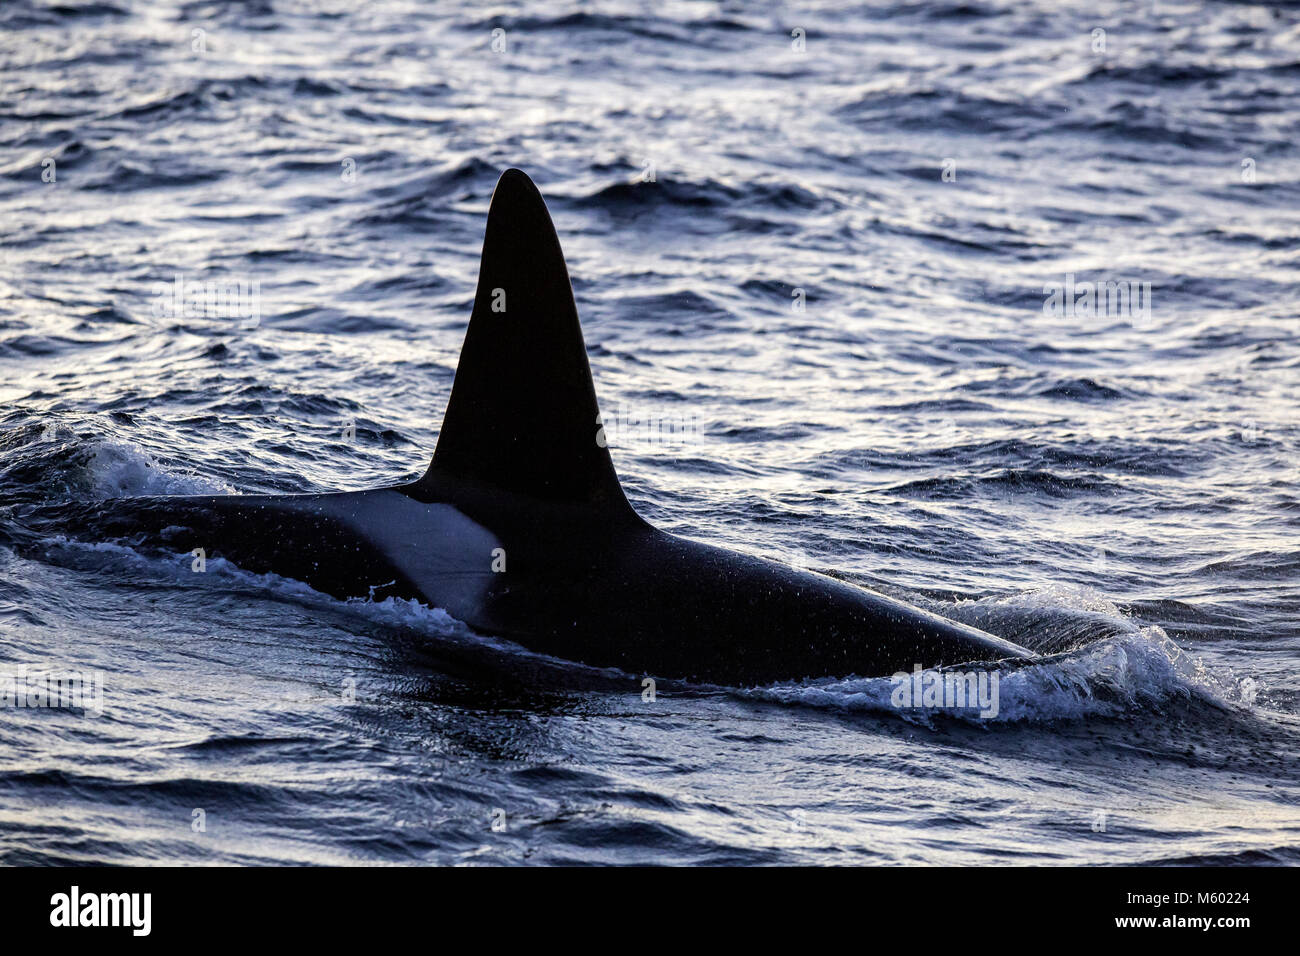 Killer Whale on Water Surface, Orcinus orca, Andfjorden, Andoya Island, Norway - Stock Image